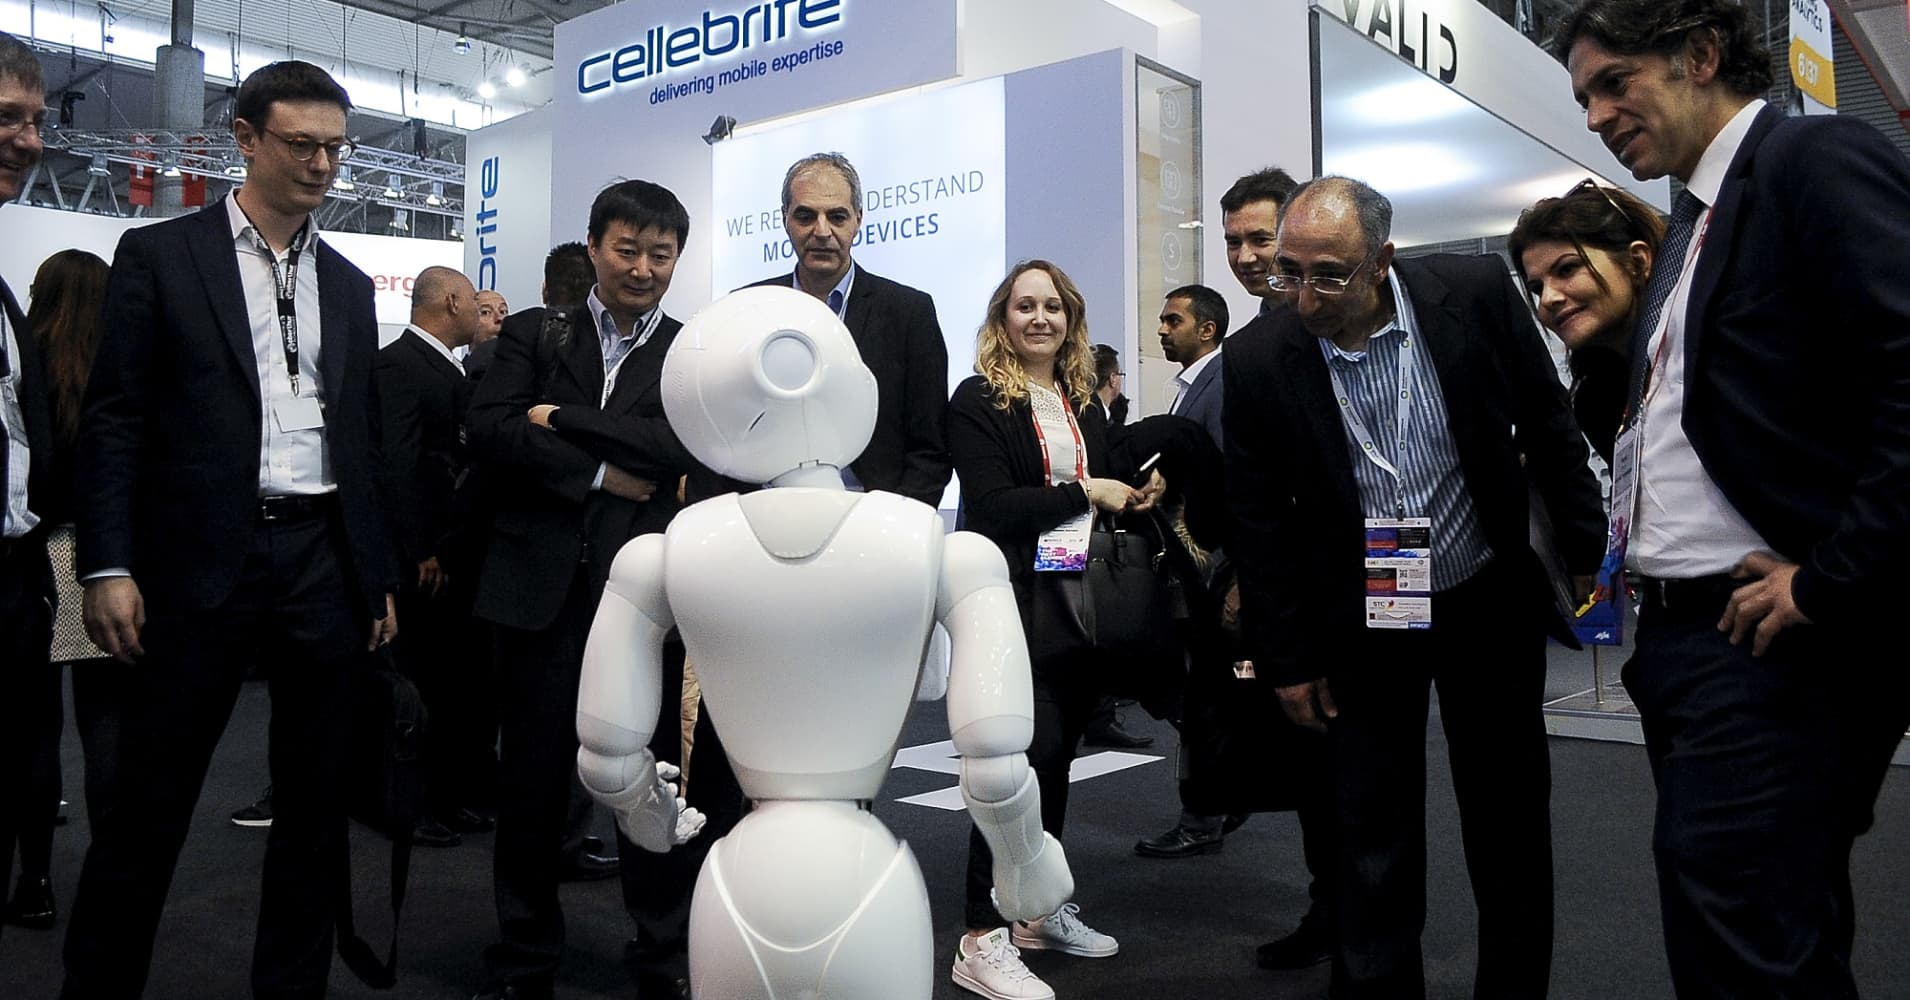 Congess attendees speak with a robot during the Mobile World Congress, on February 27, 2017 in Barcelona, Spain.